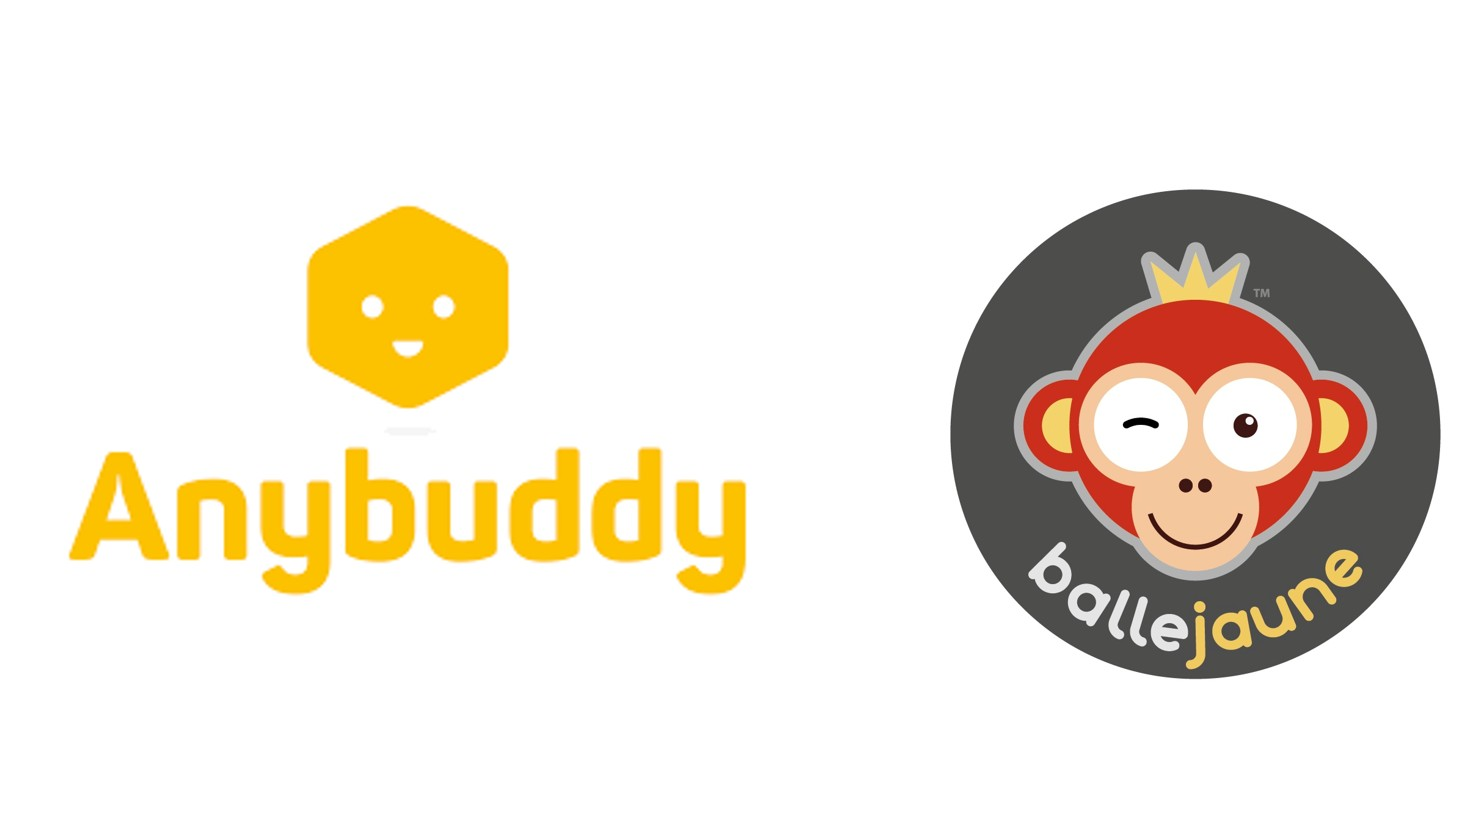 La partnership di BalleJaune e AnyBuddy